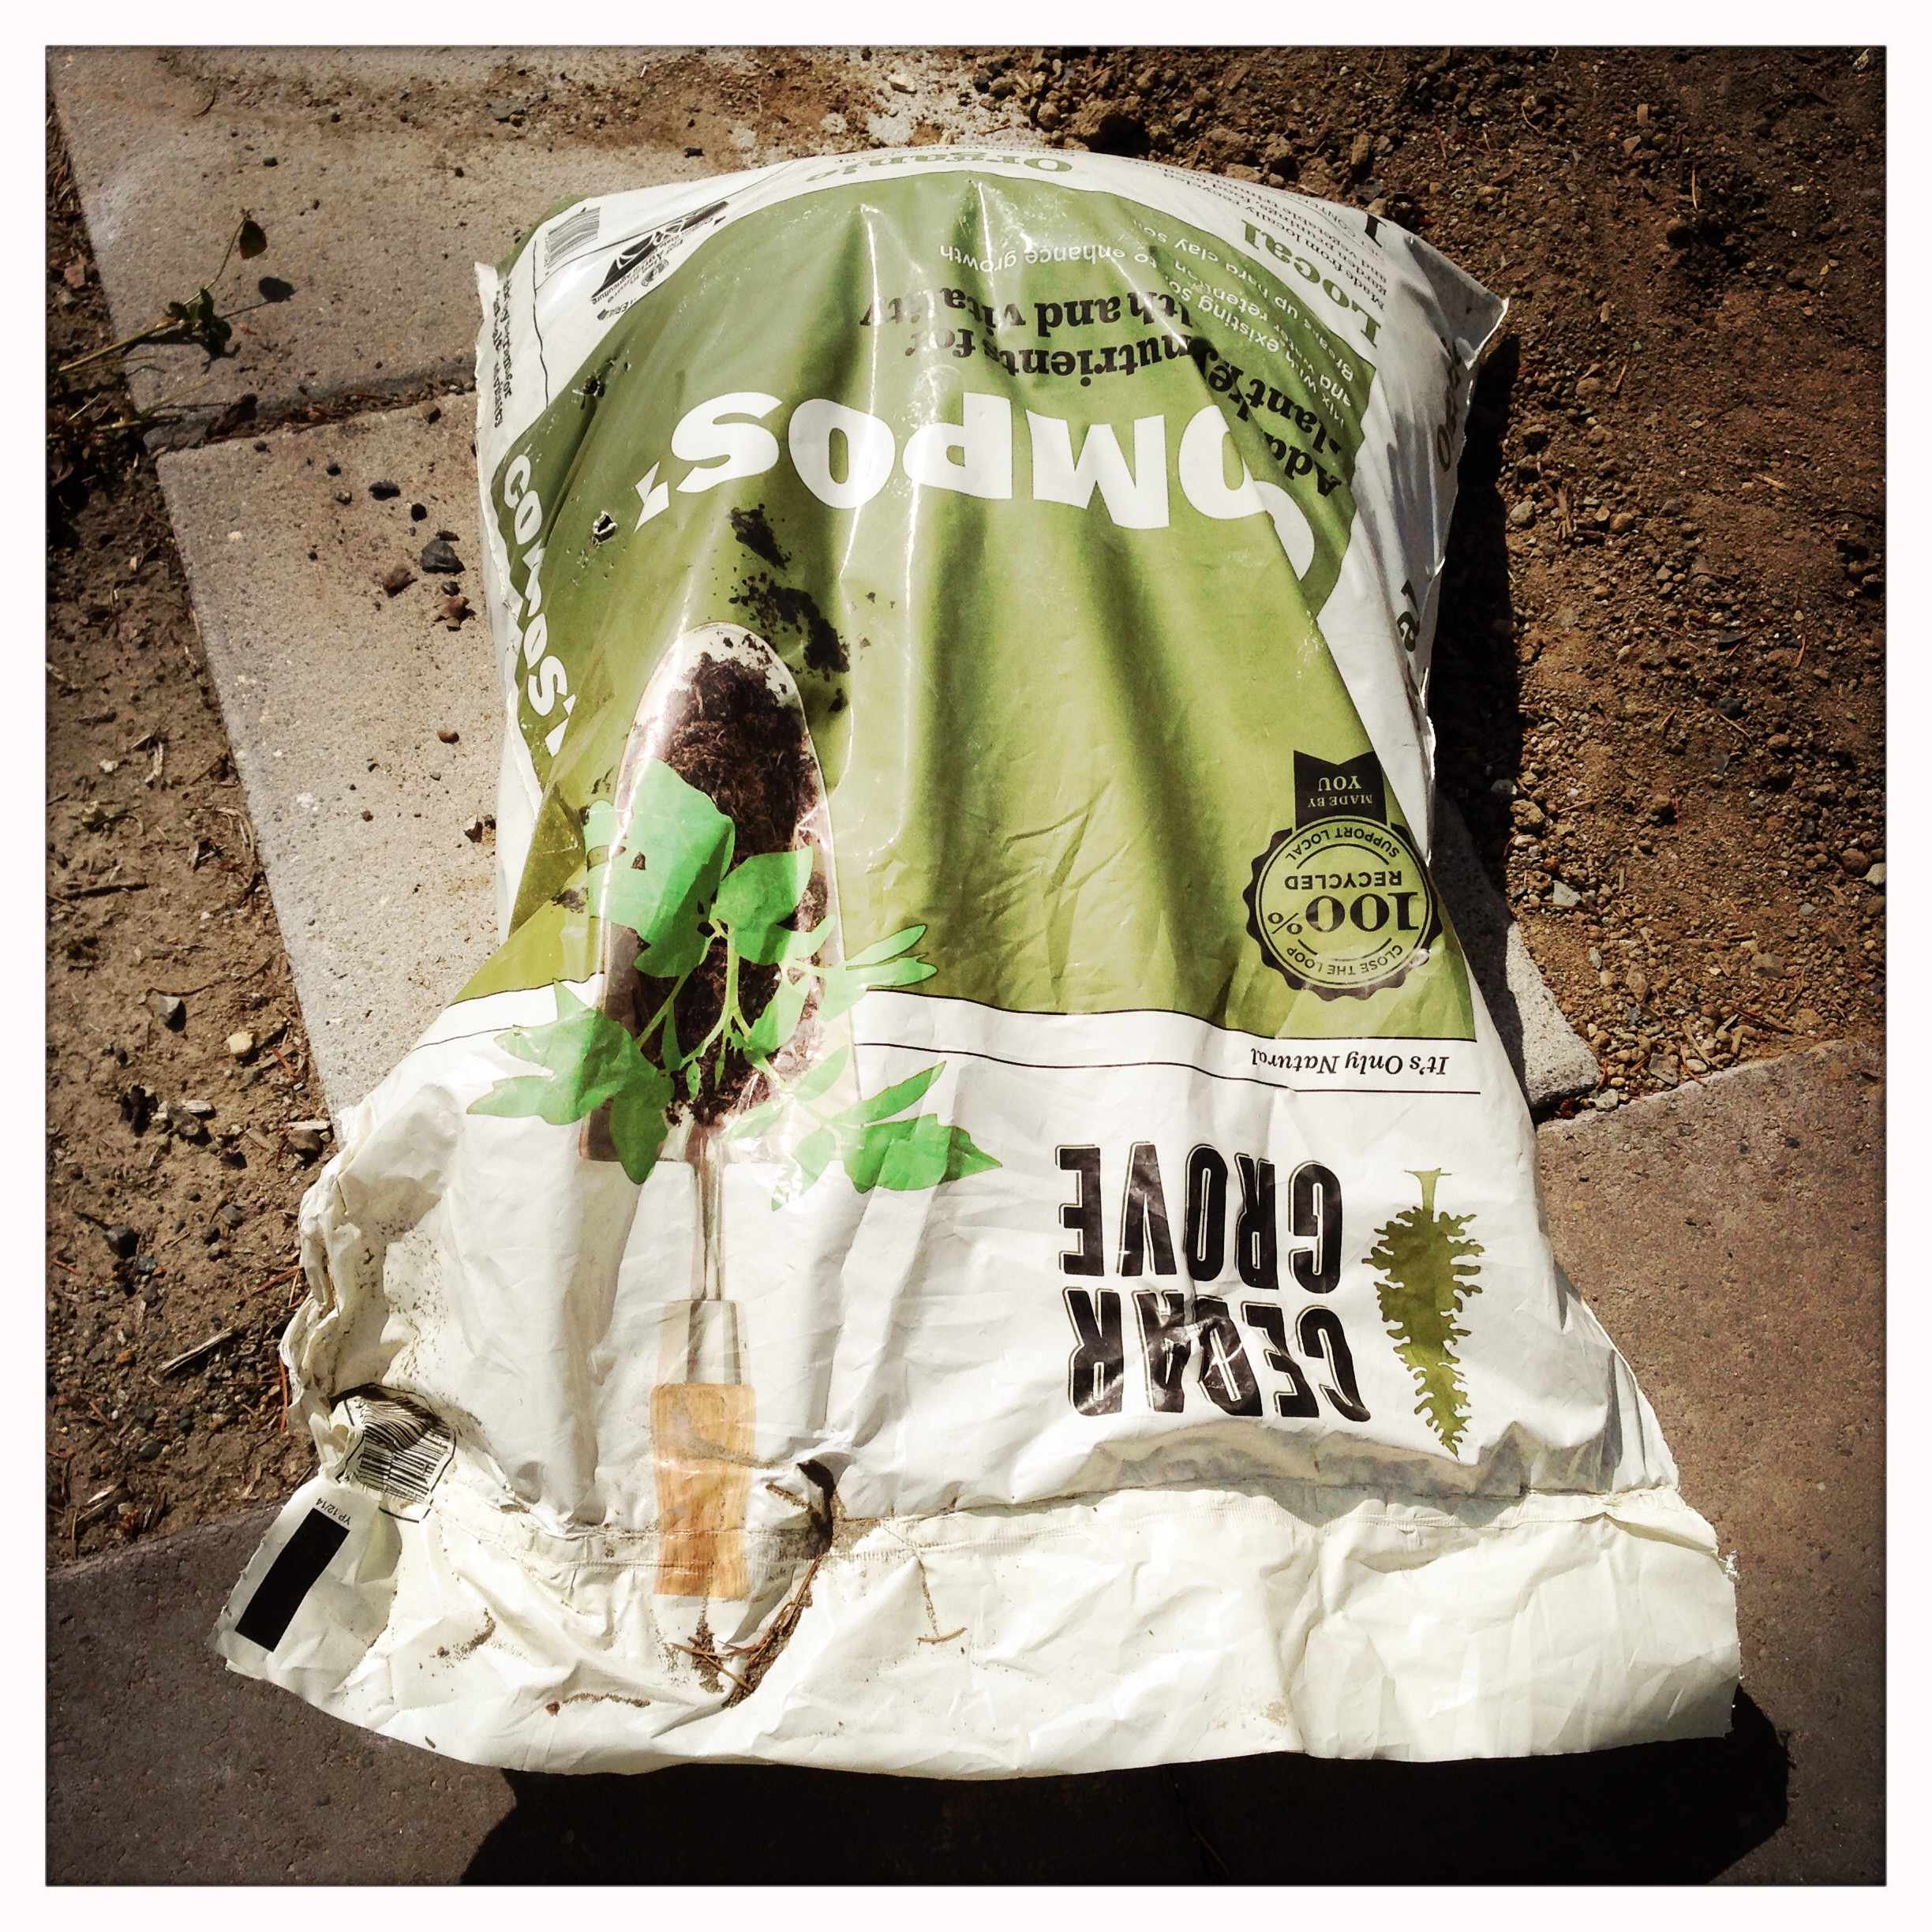 Compost is truly the miracle cure for all soil texture and nutrient problems. It will help drain a clayey soil, retain moisture in a sandy soil, and provide organic matter that can be taken up by plants as fertilizer over time.